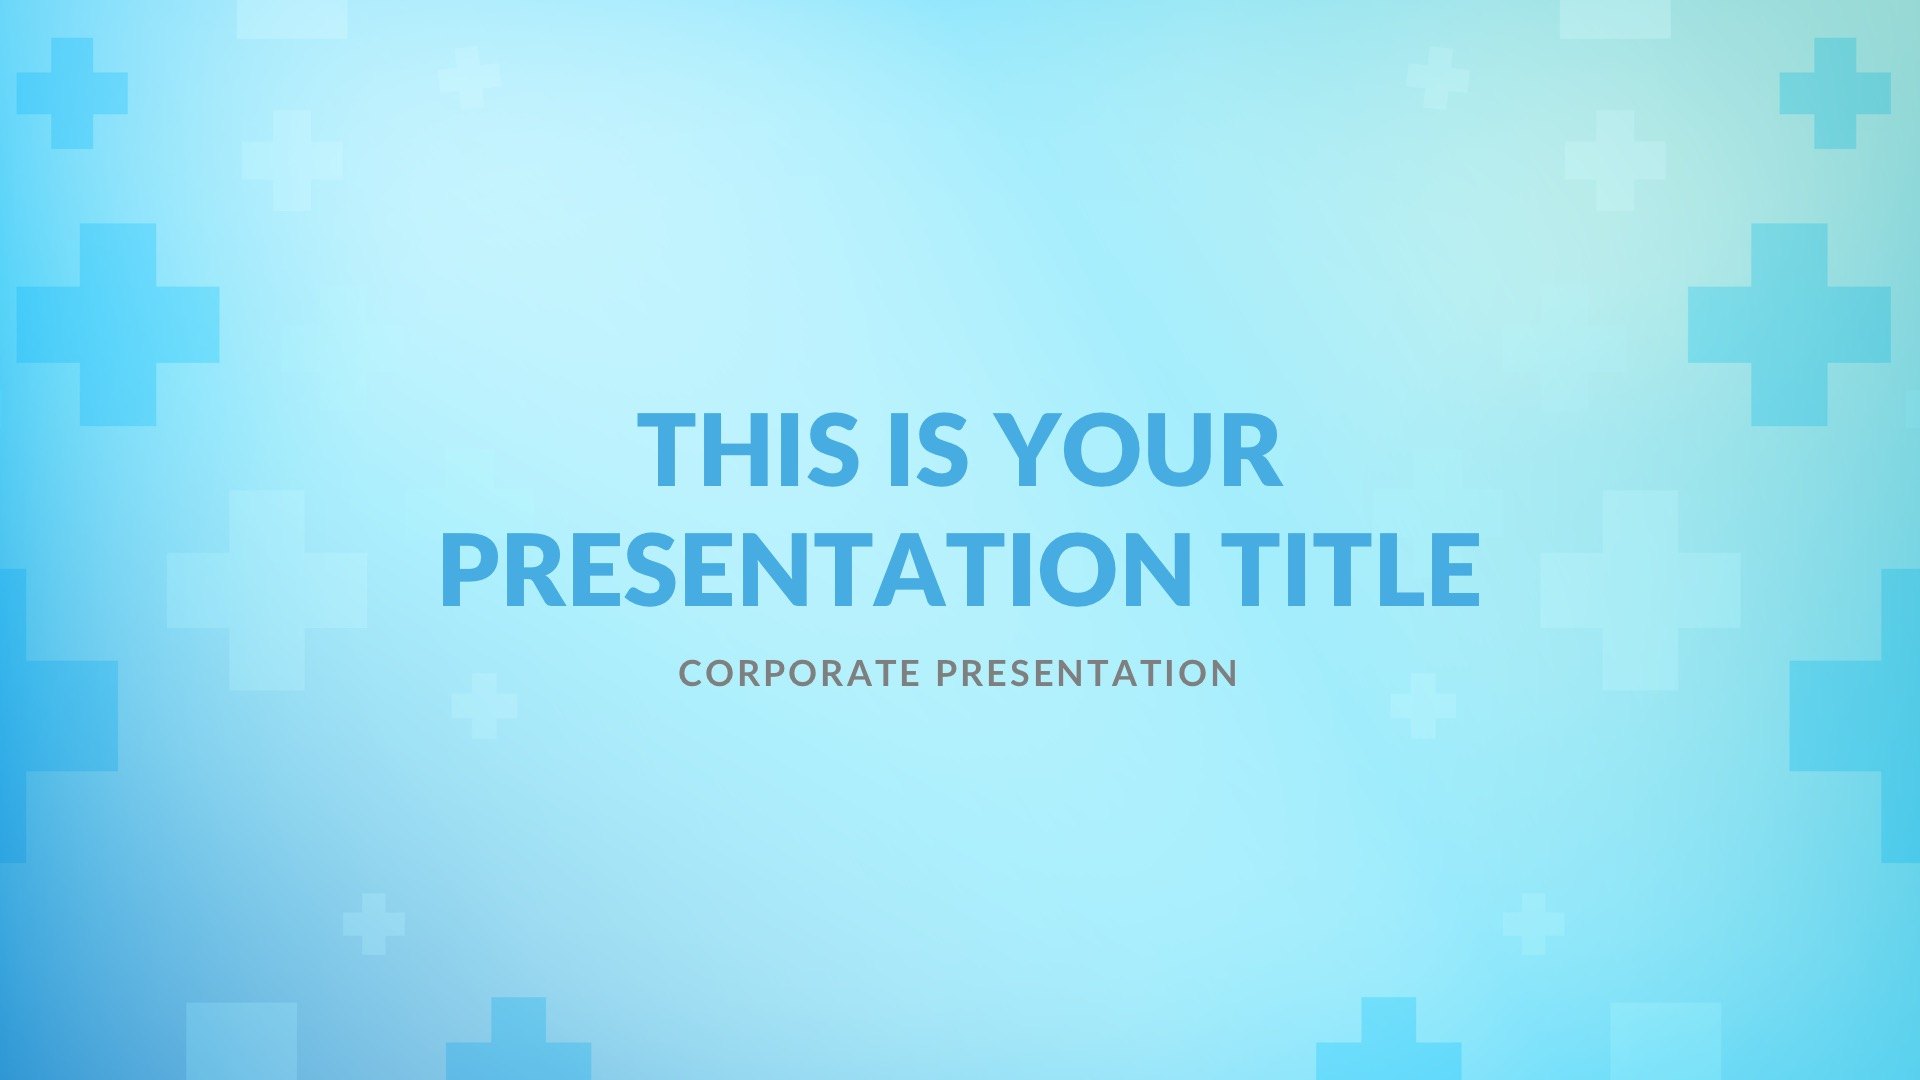 X Medical PowerPoint Template, Google Slides, Keynote.jpg